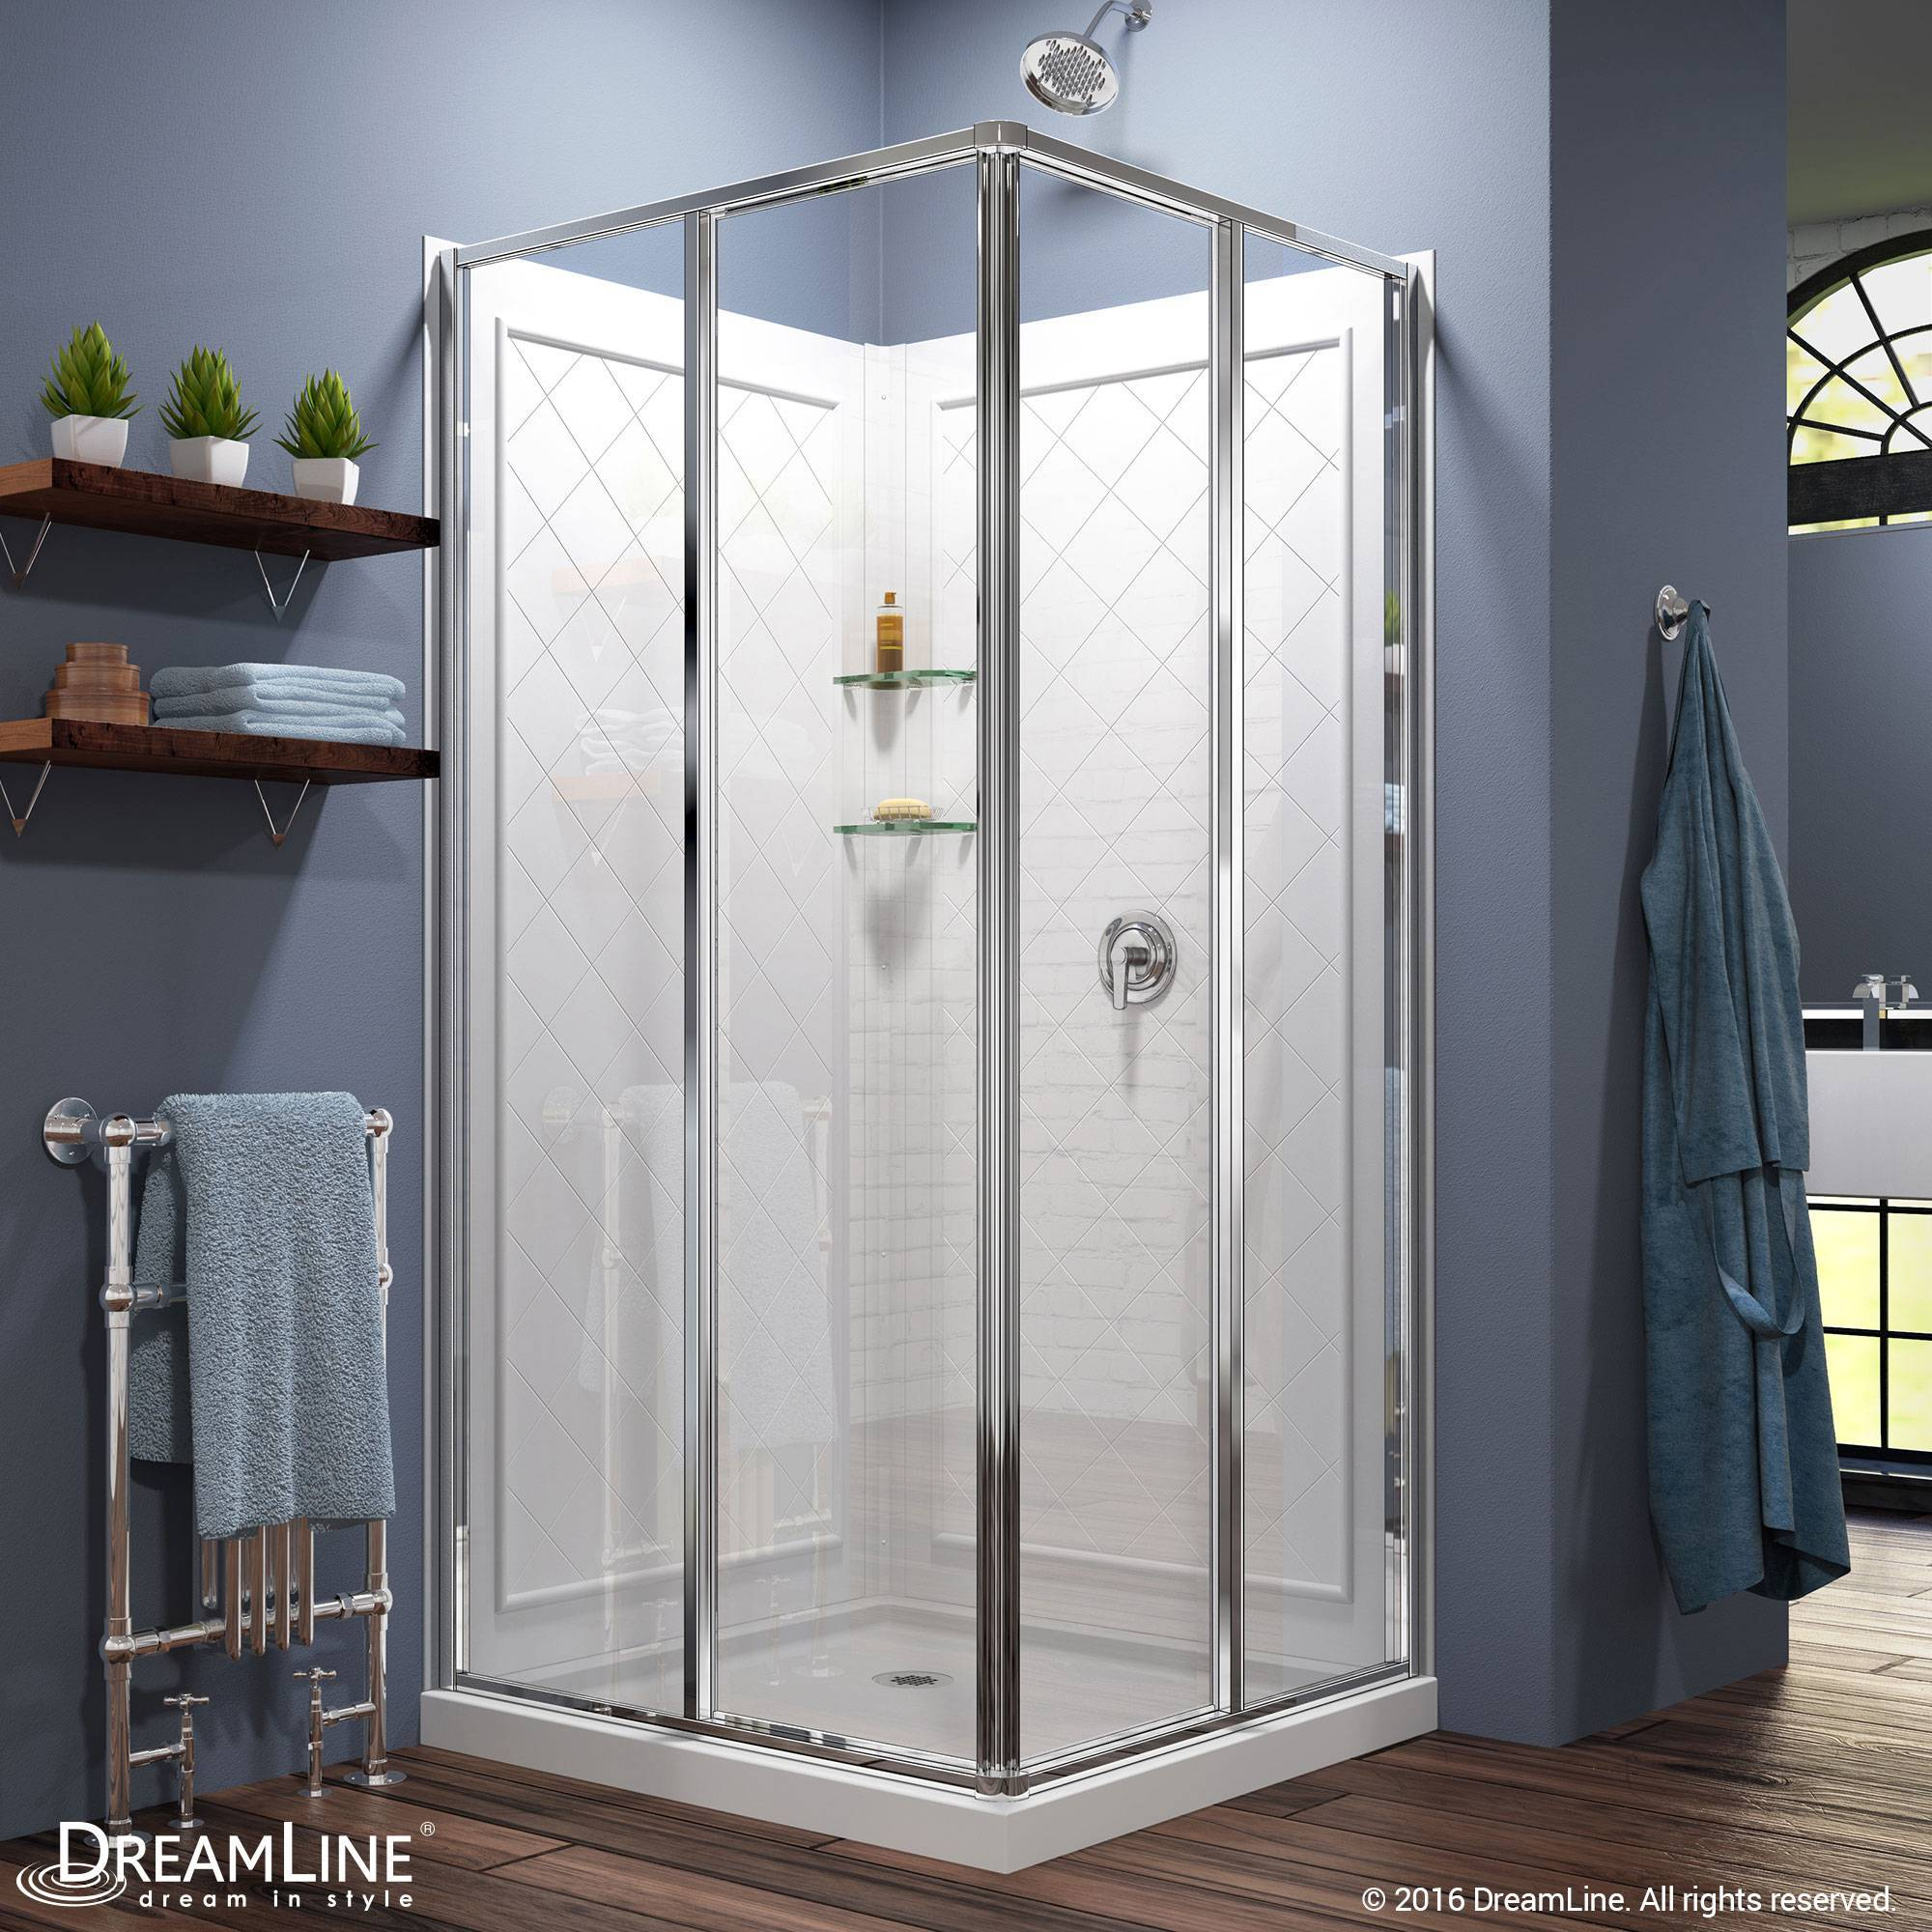 DreamLine DreamLine Cornerview Framed Sliding Shower Enclosure